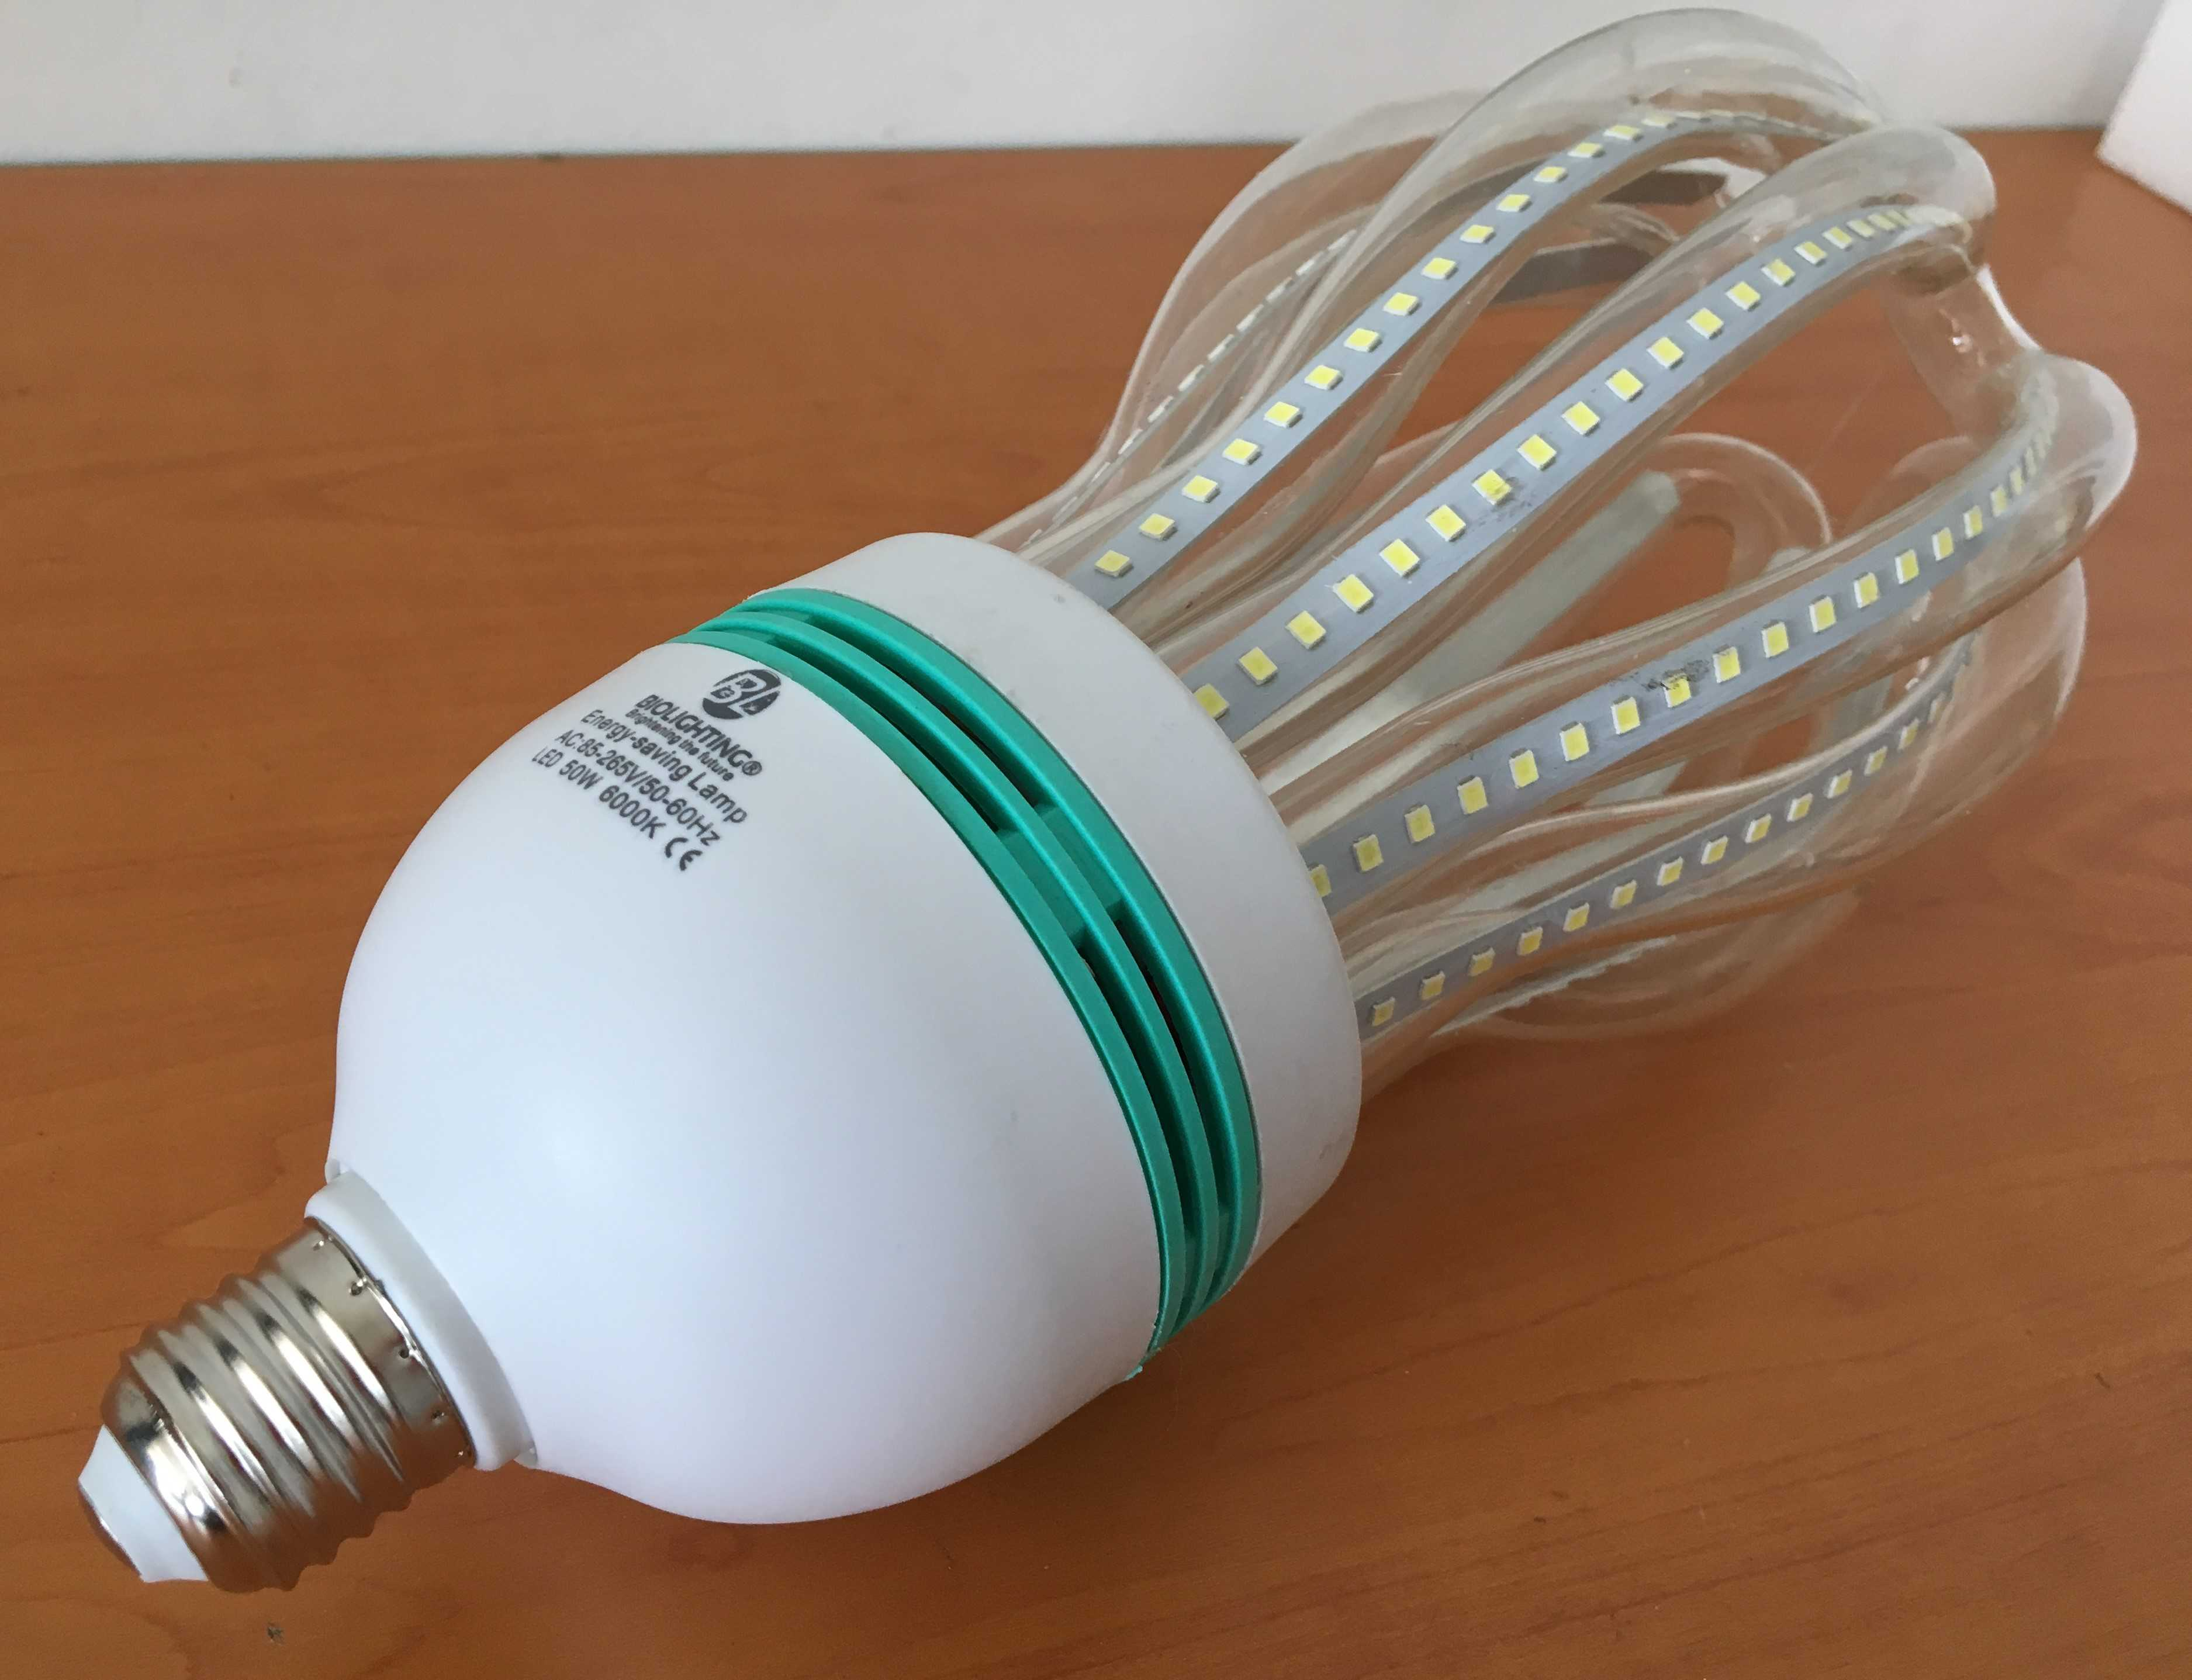 Bombillo Ahorrador LED Araña 50 Watts. Marca BIOLIGHTING.